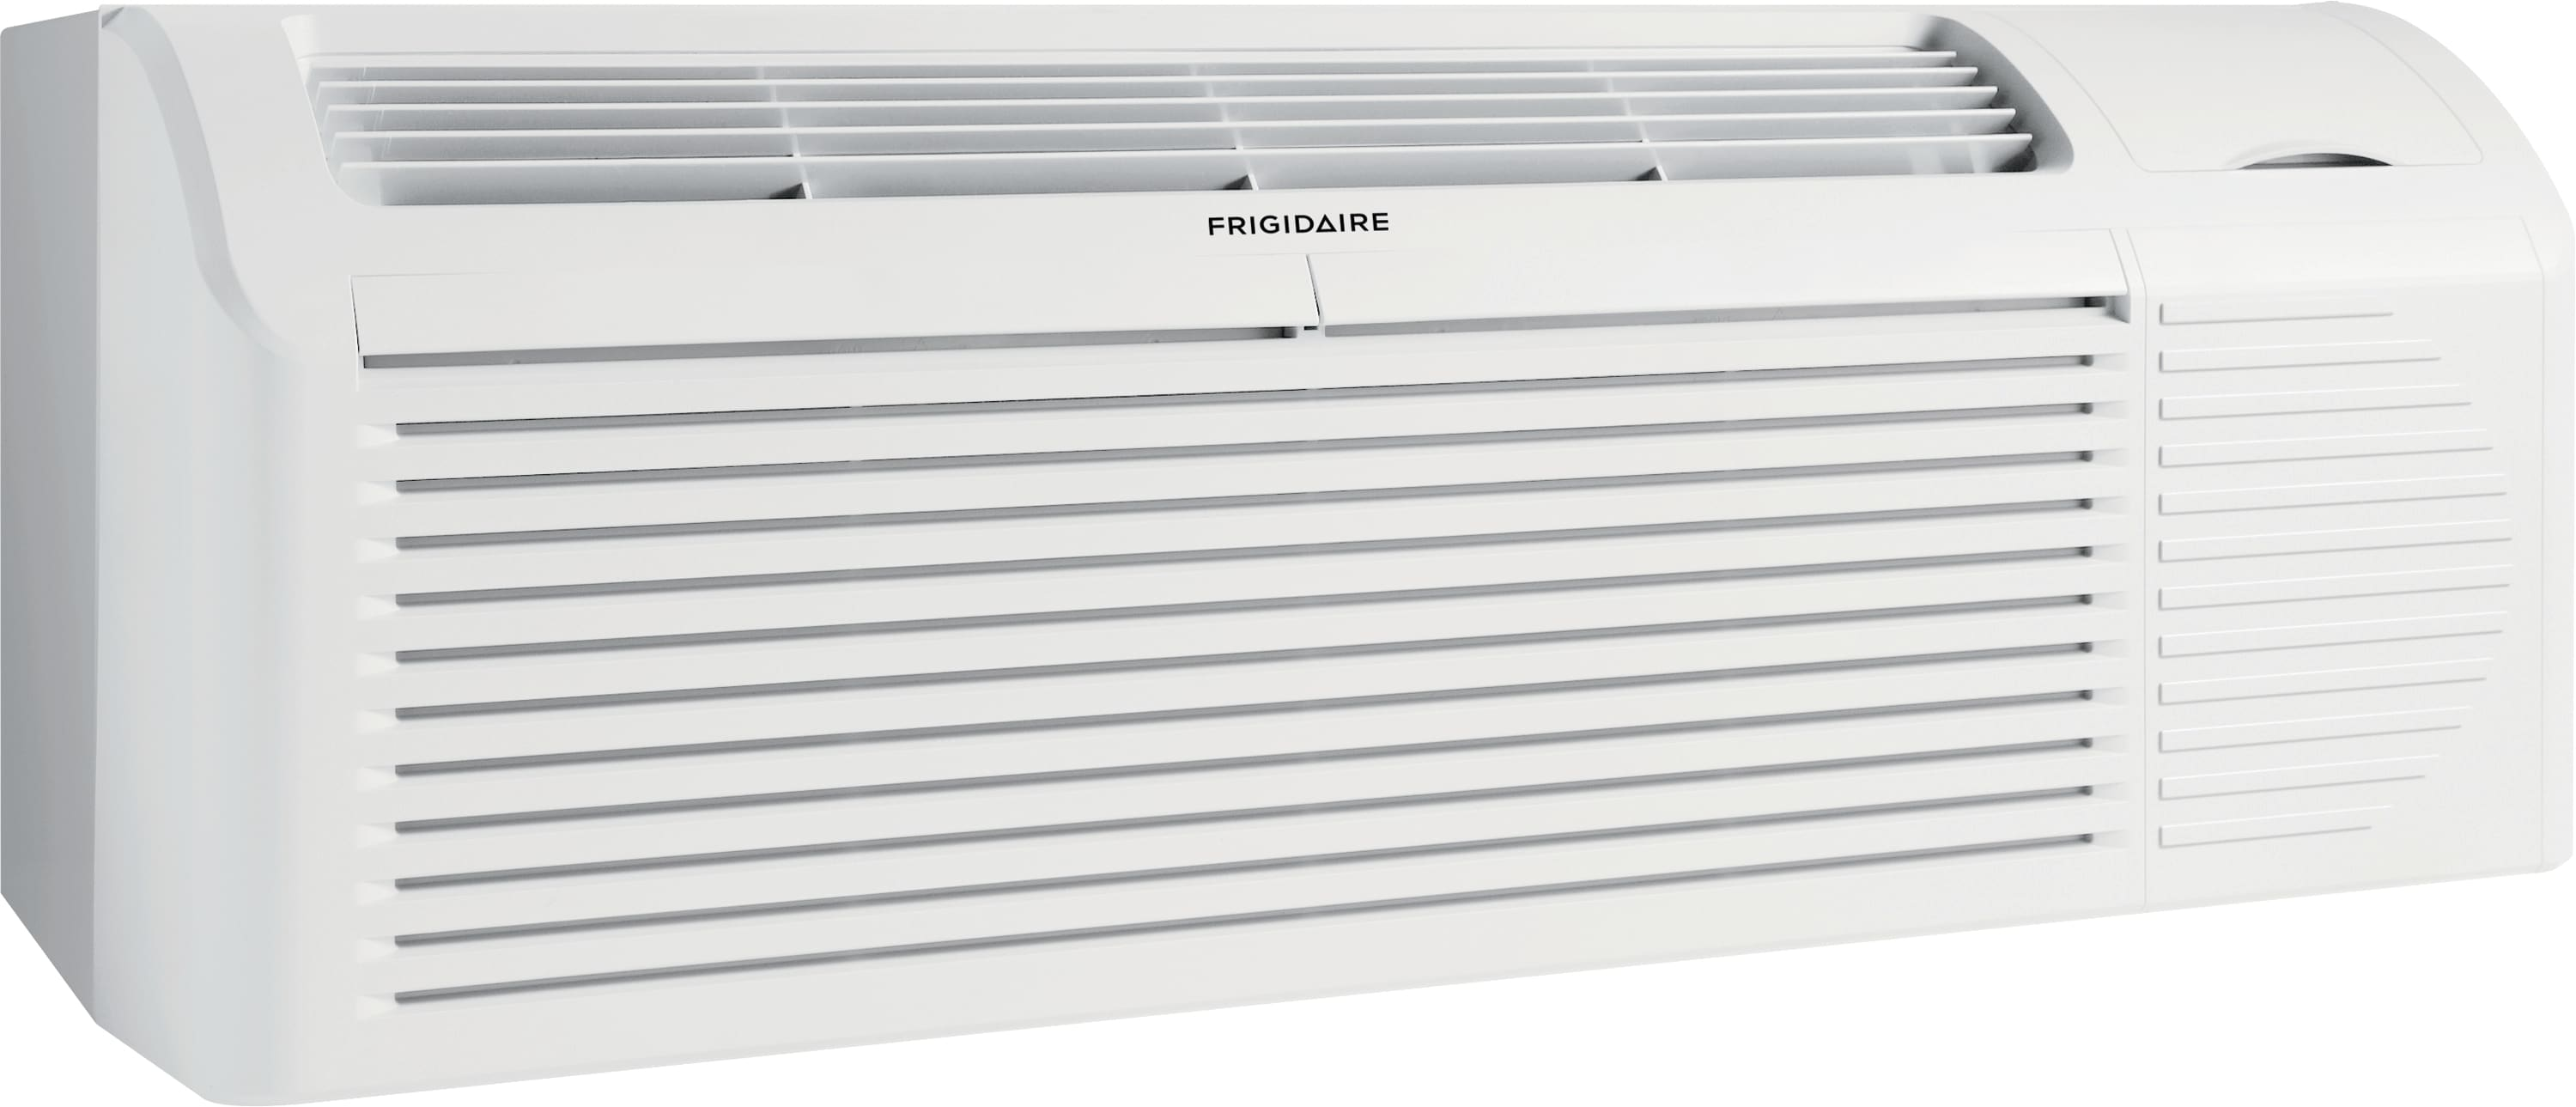 Model: FFRP122LT3 | PTAC unit with Electric Heat 12,000 BTU 208/230V with Corrosion Guard and Dry Mode